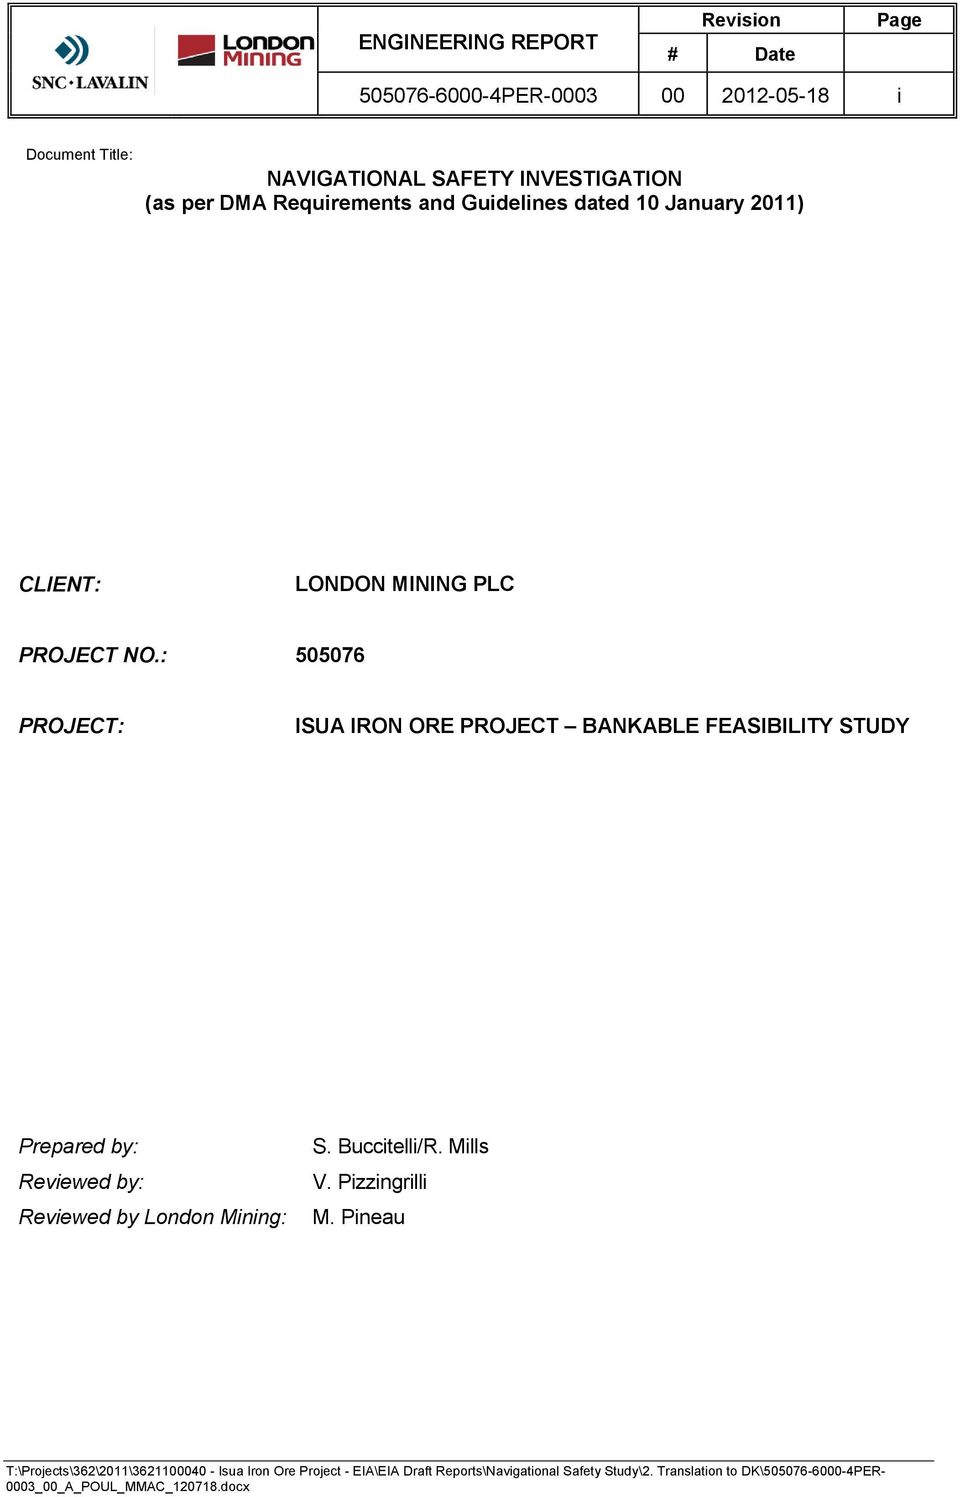 NO.: 505076 PROJECT: ISUA IRON ORE PROJECT BANKABLE FEASIBILITY STUDY Prepared by: